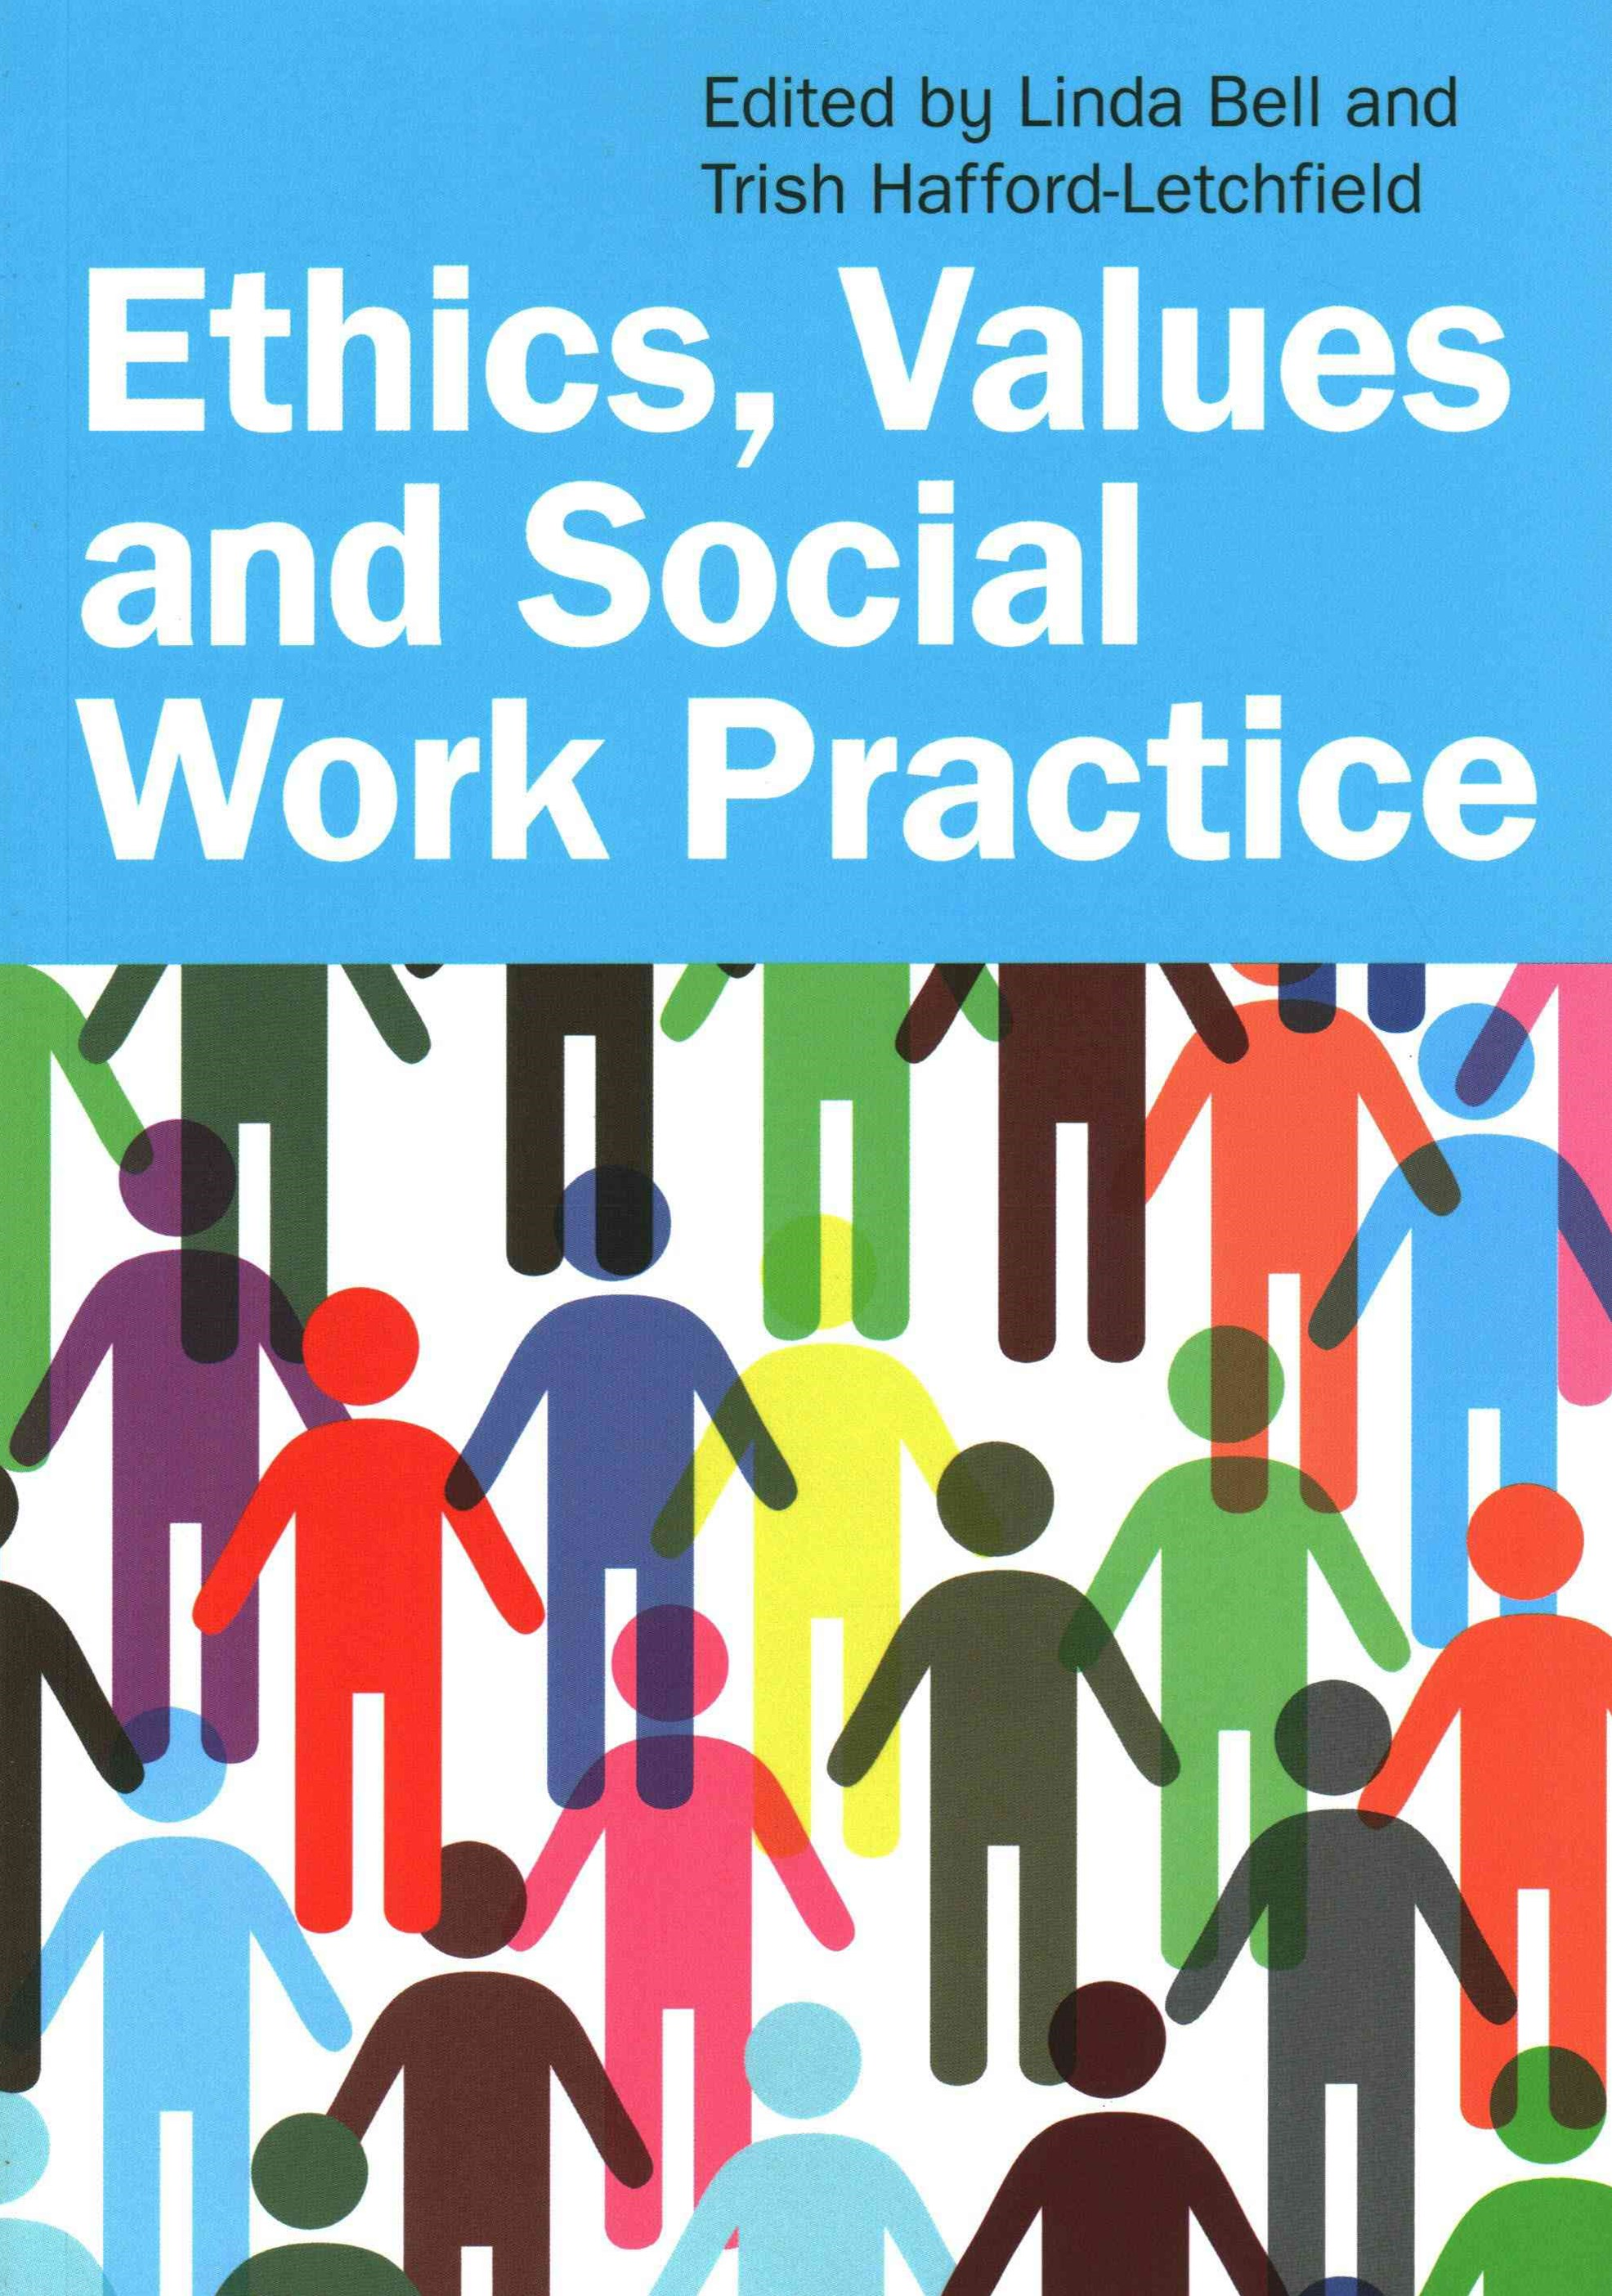 Ethics, Values and Social Work Practice